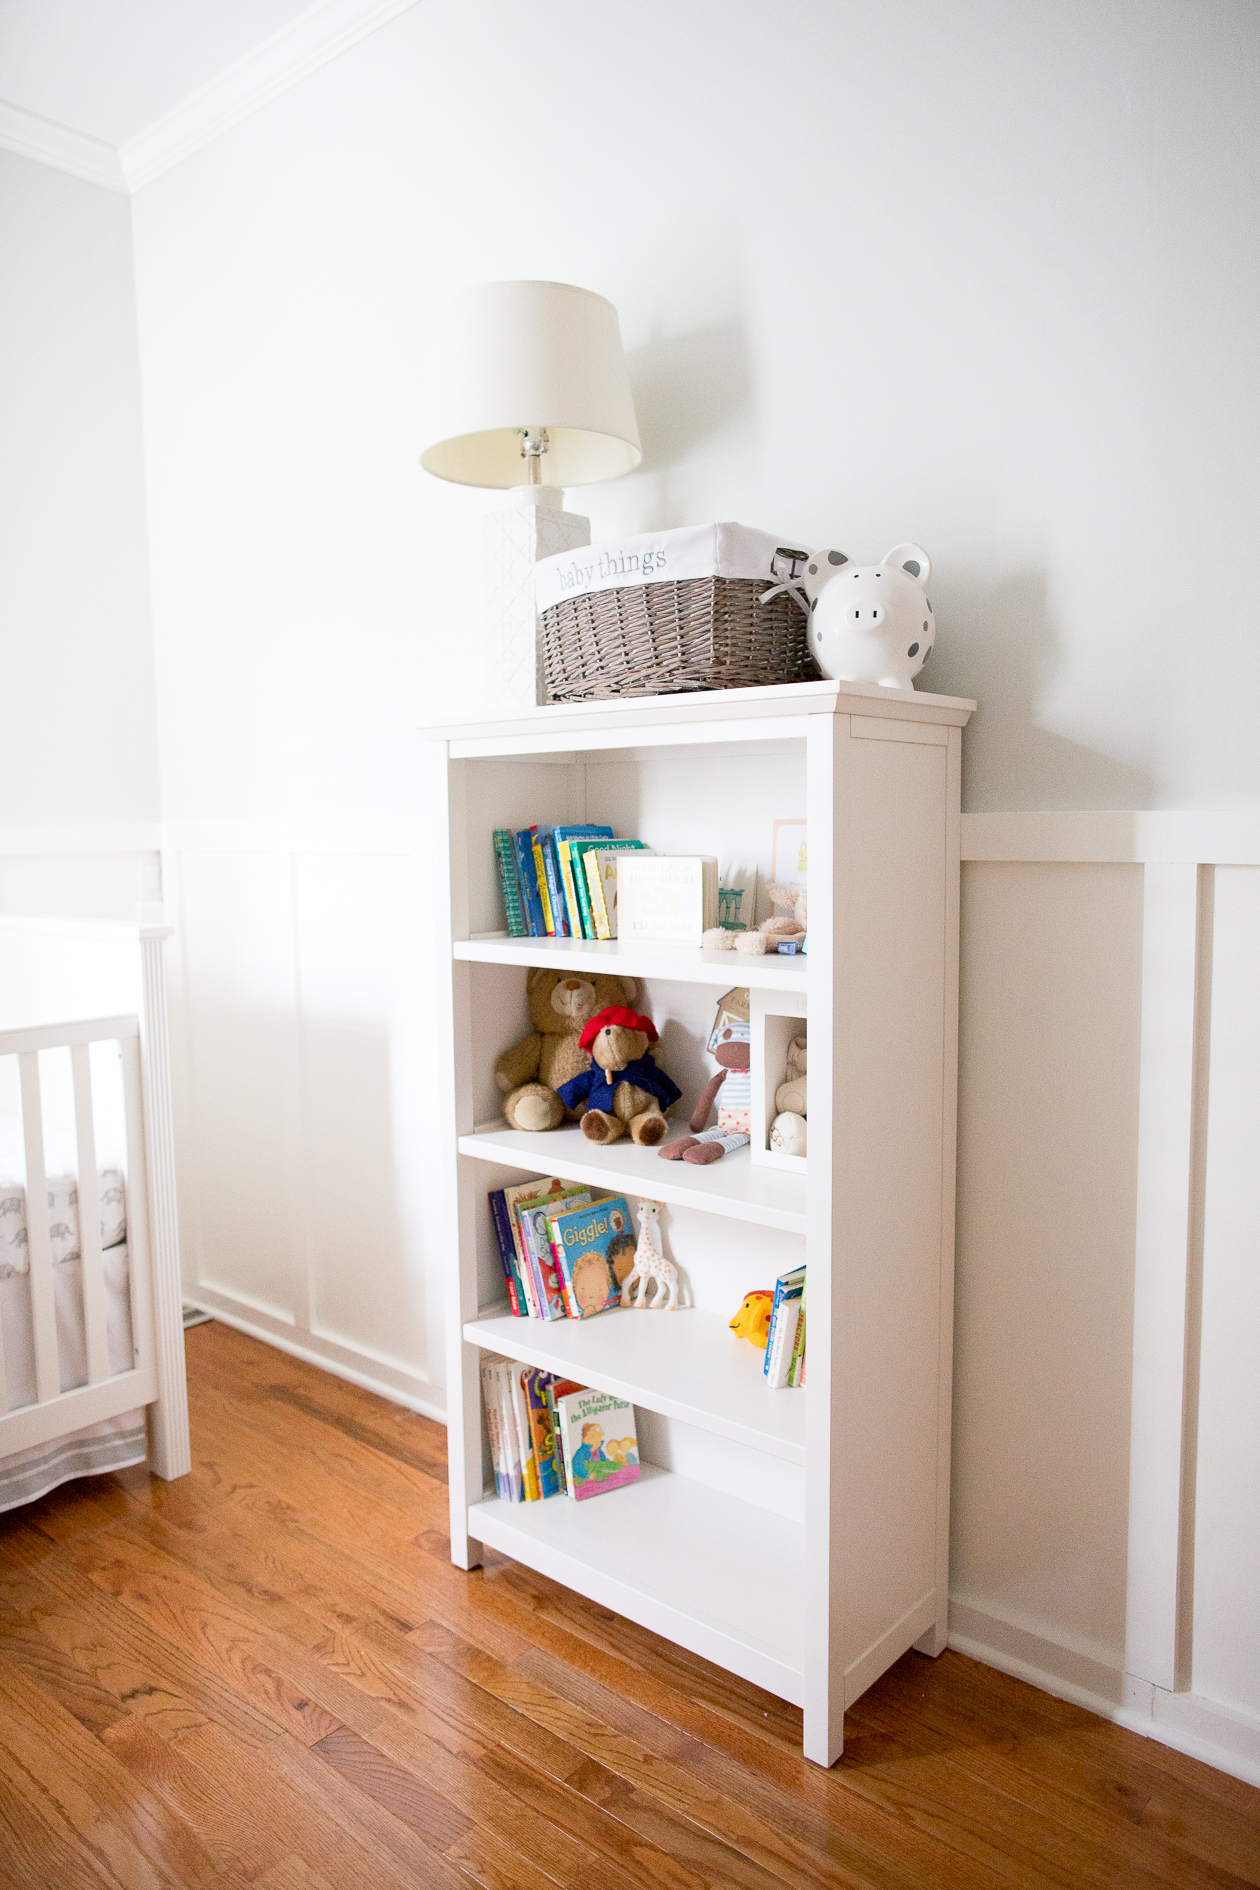 Kelly-in-the-City-Nursery-20